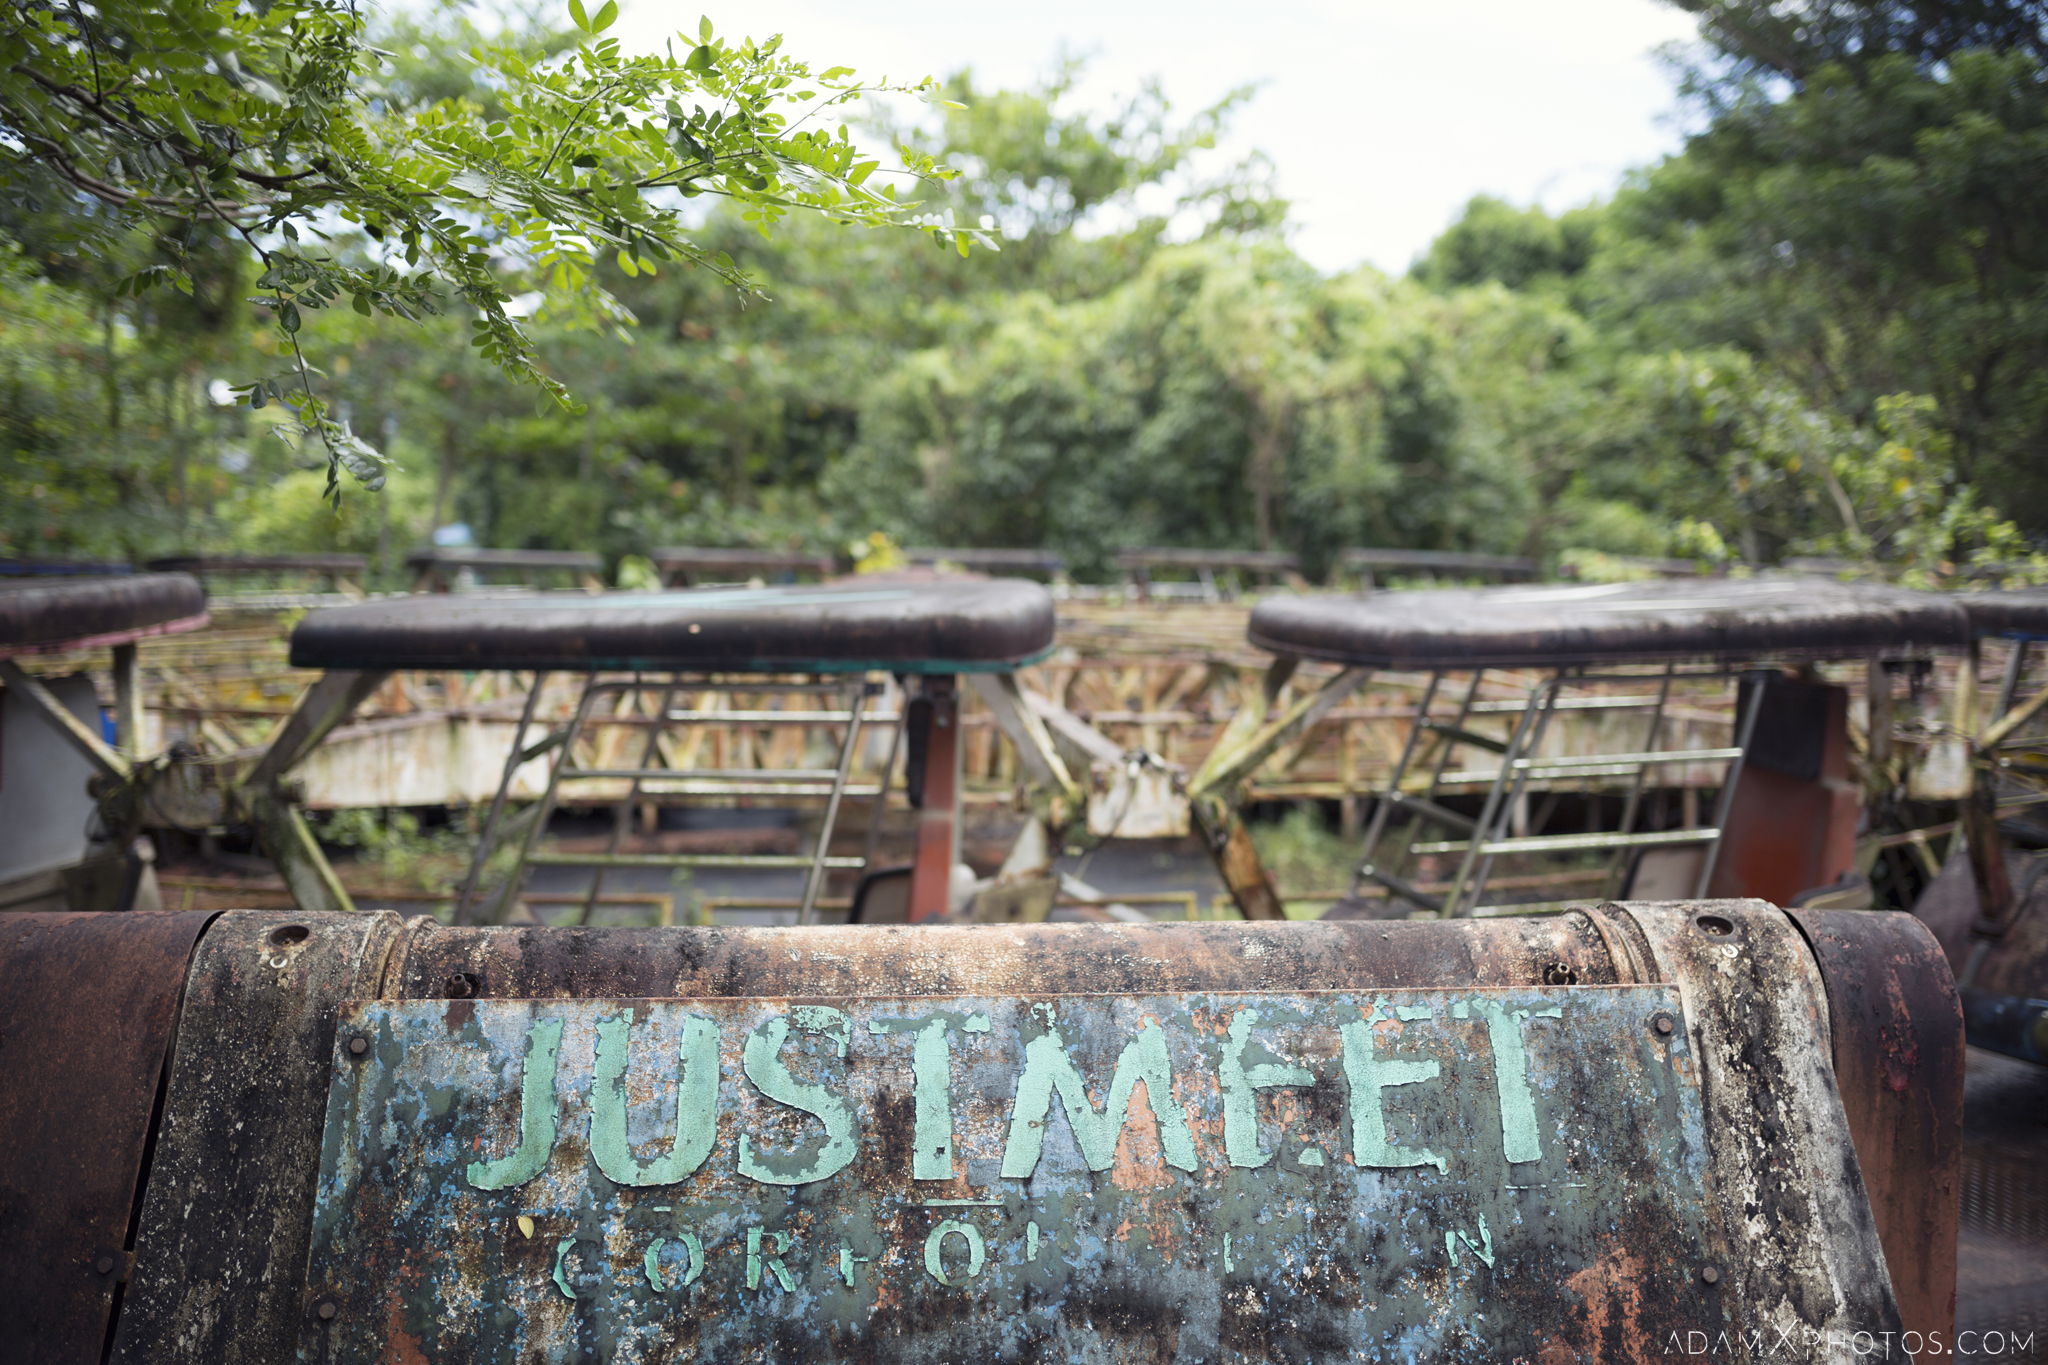 Justmeet Corporation Happy World Theme Park Amusement Park Fairground Myanmar Burma Yangon Rangoon Urbex Adam X Urban Exploration Access 2016 Abandoned decay lost forgotten derelict location creepy haunting eerie